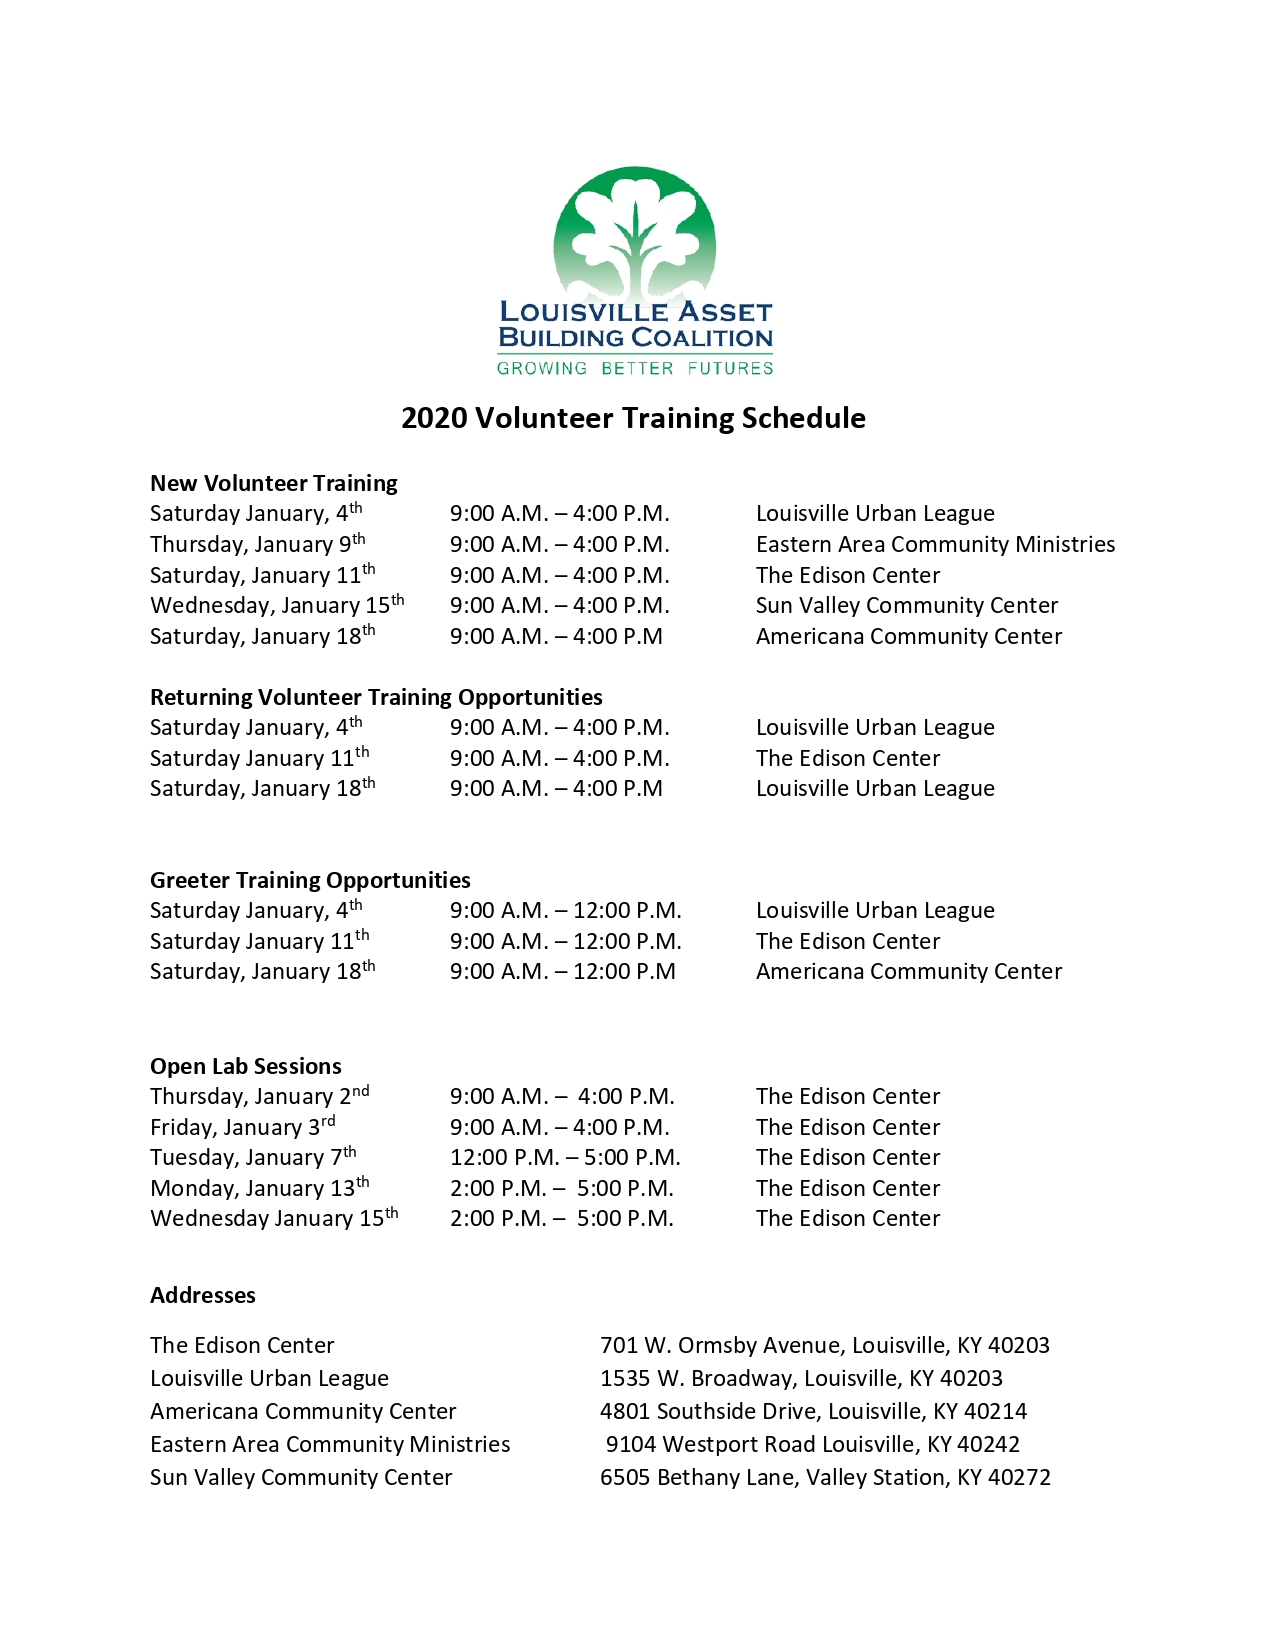 2020 Volunteer Training Schedule page 0001